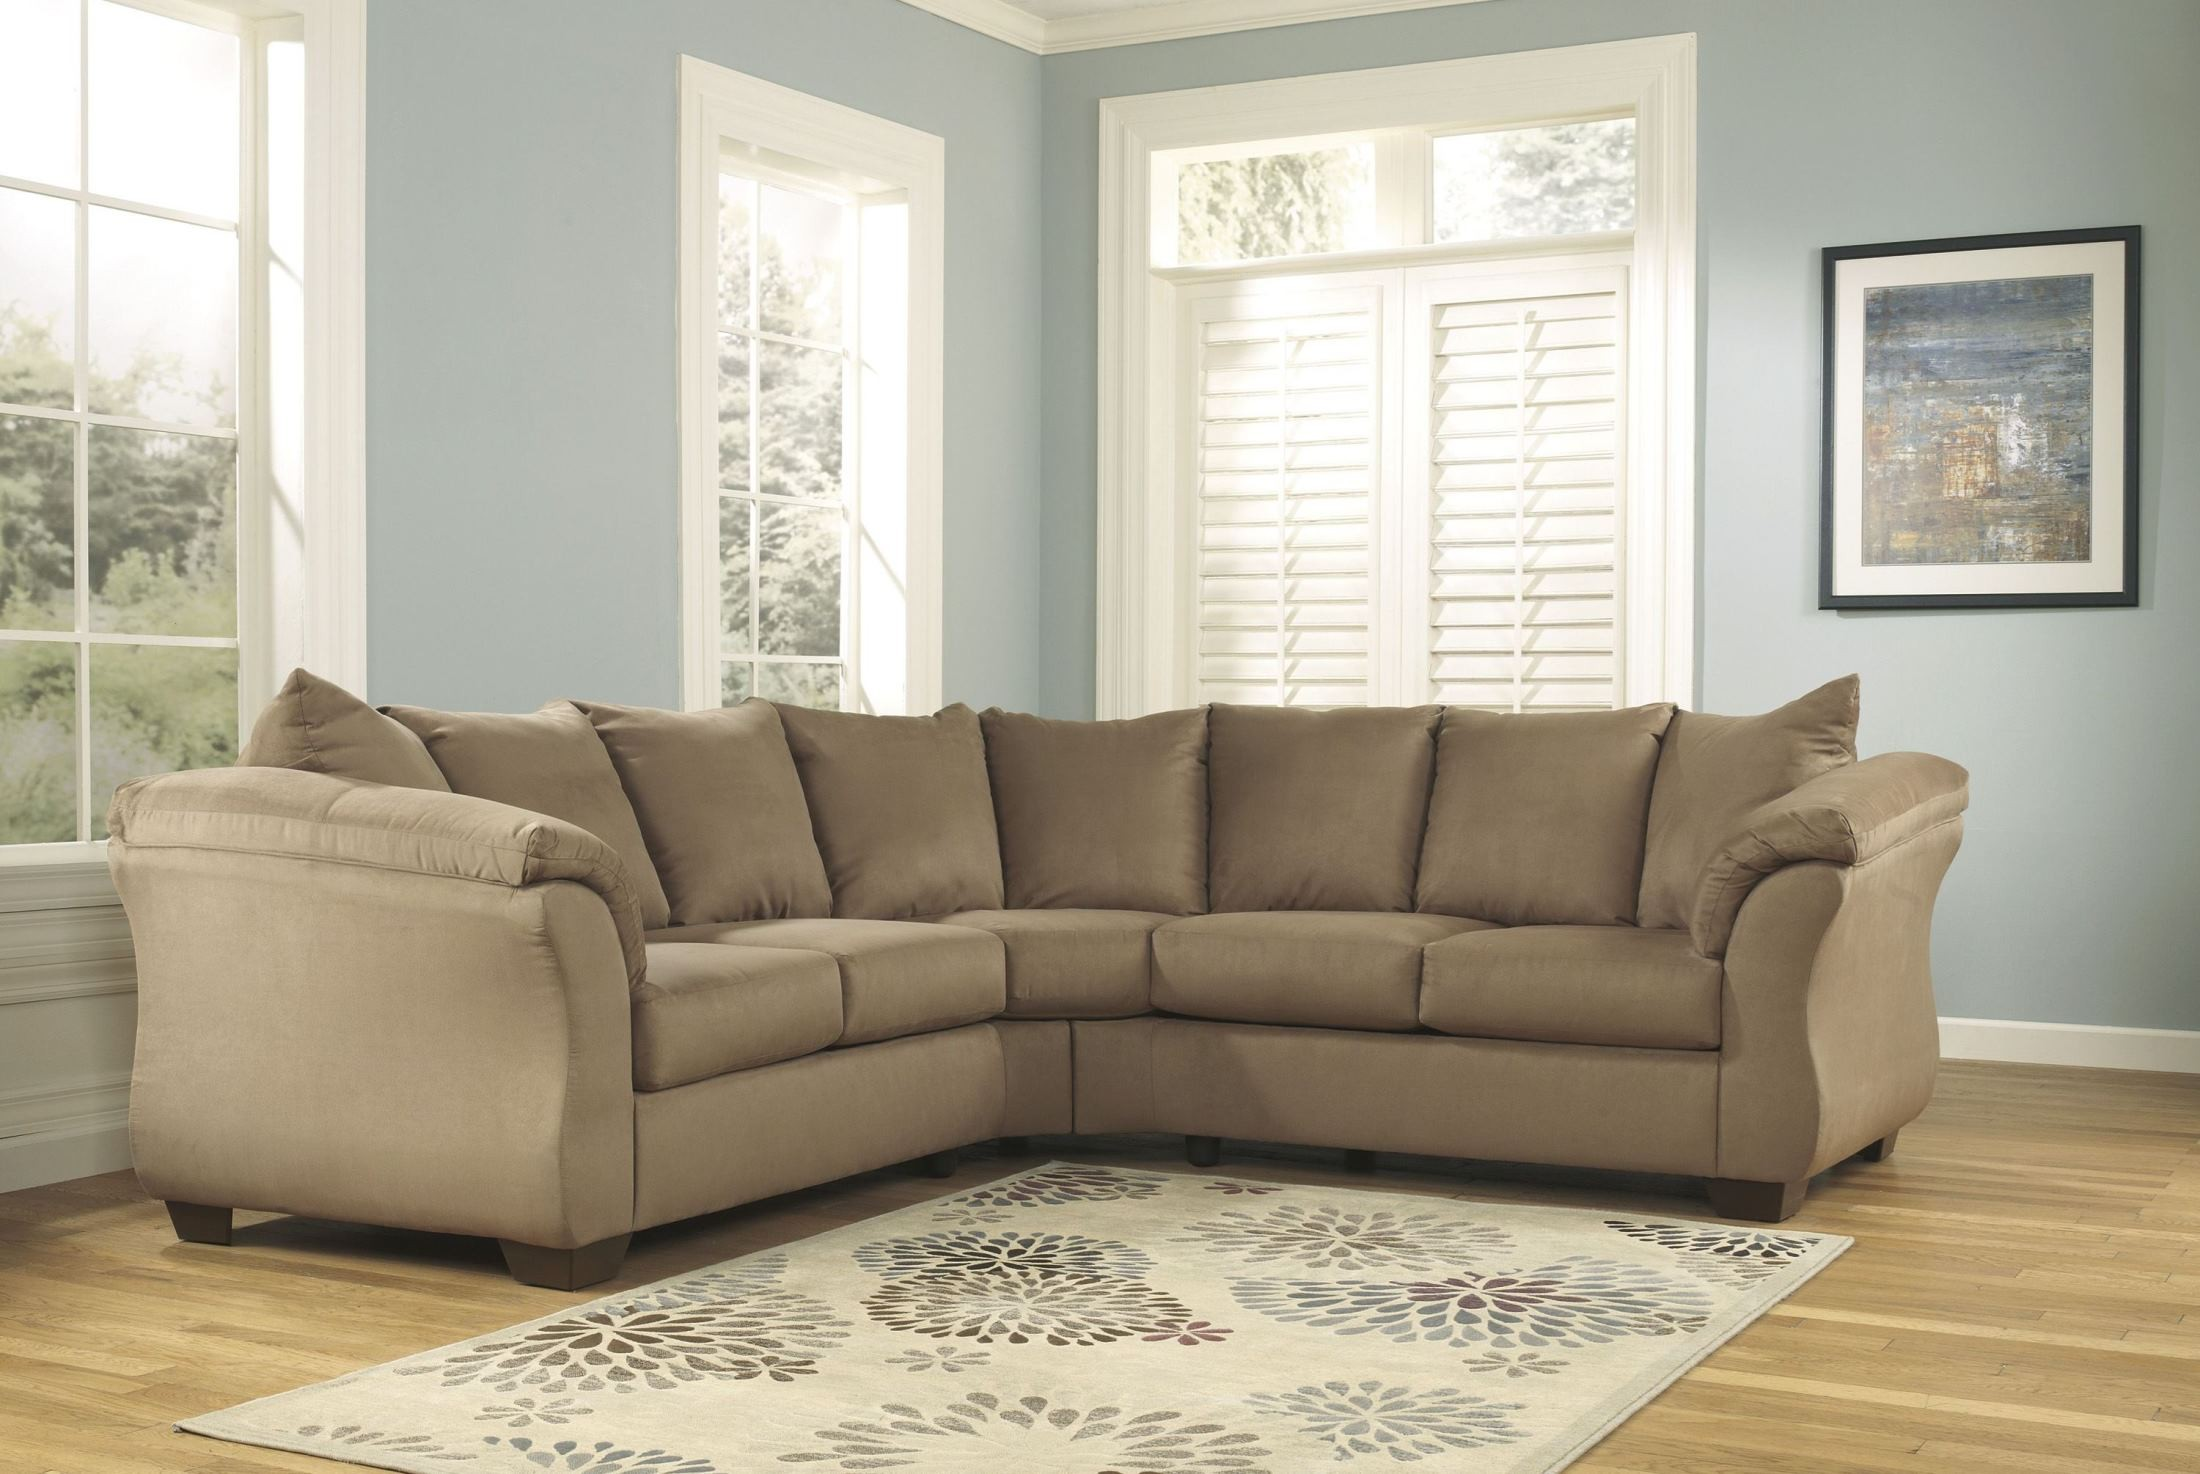 ashley furniture morandi mocha sofa twin bed furnitureetc and more darcy sectional from